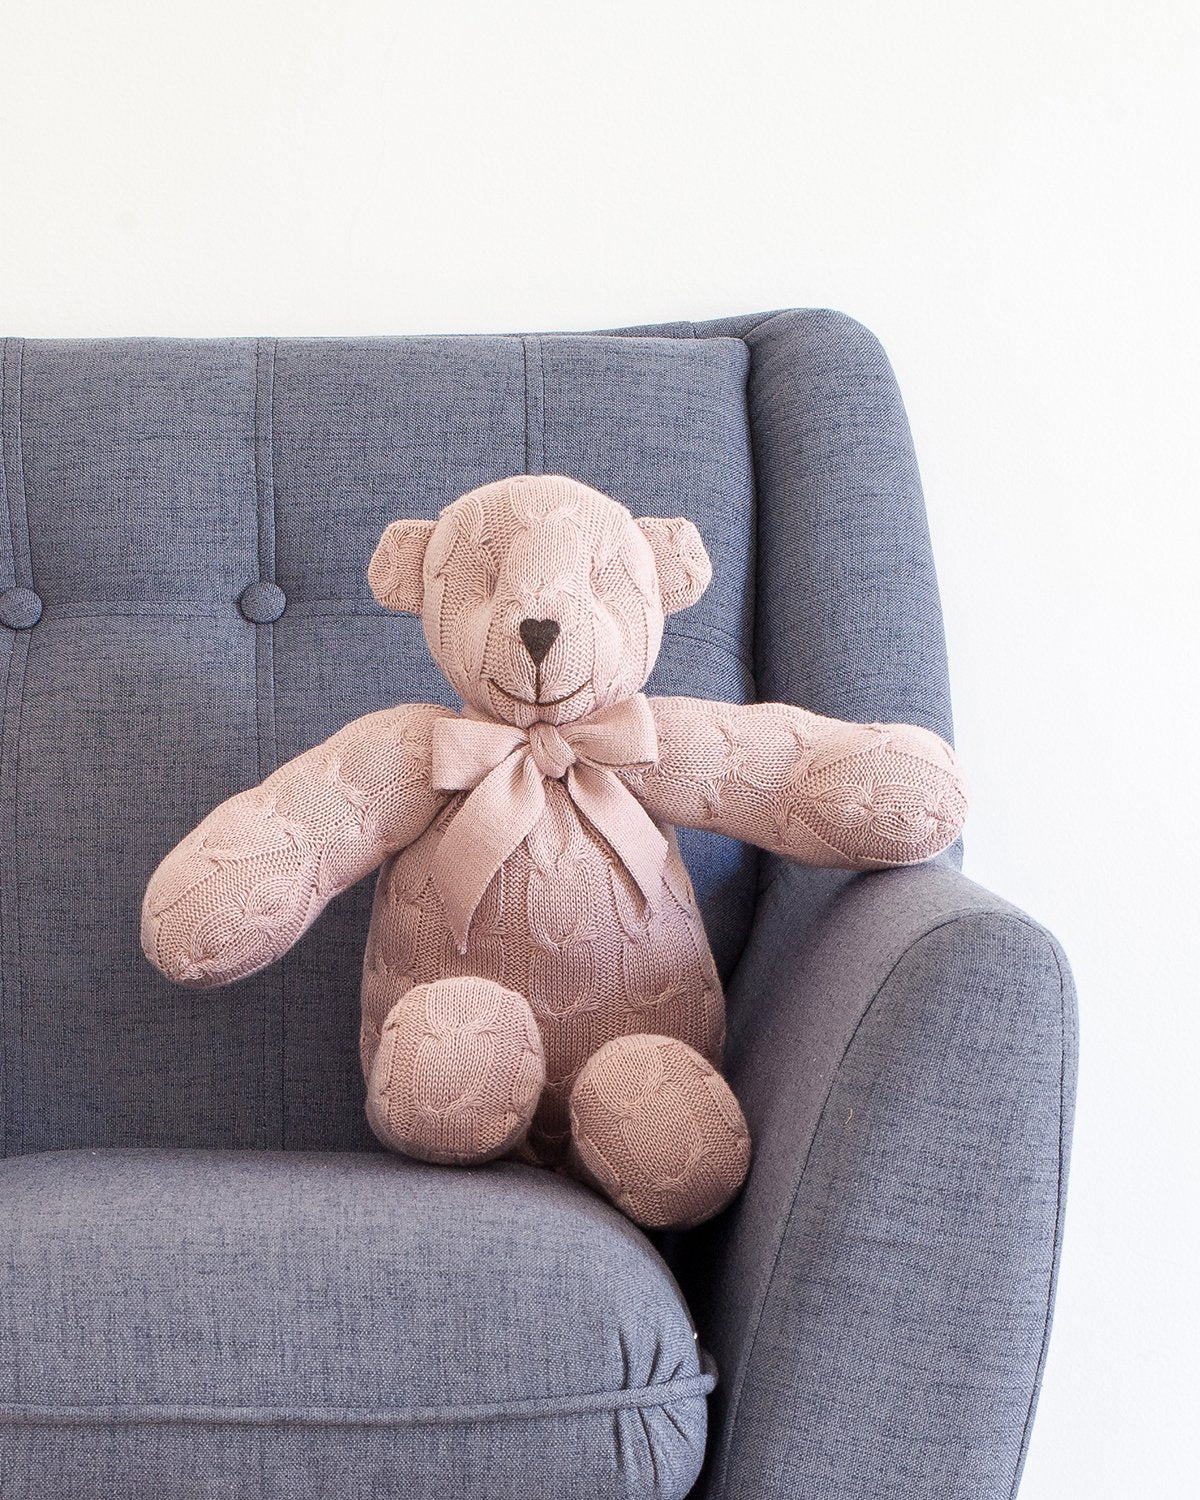 Plush Cable Knit Teddy Bear - Rose